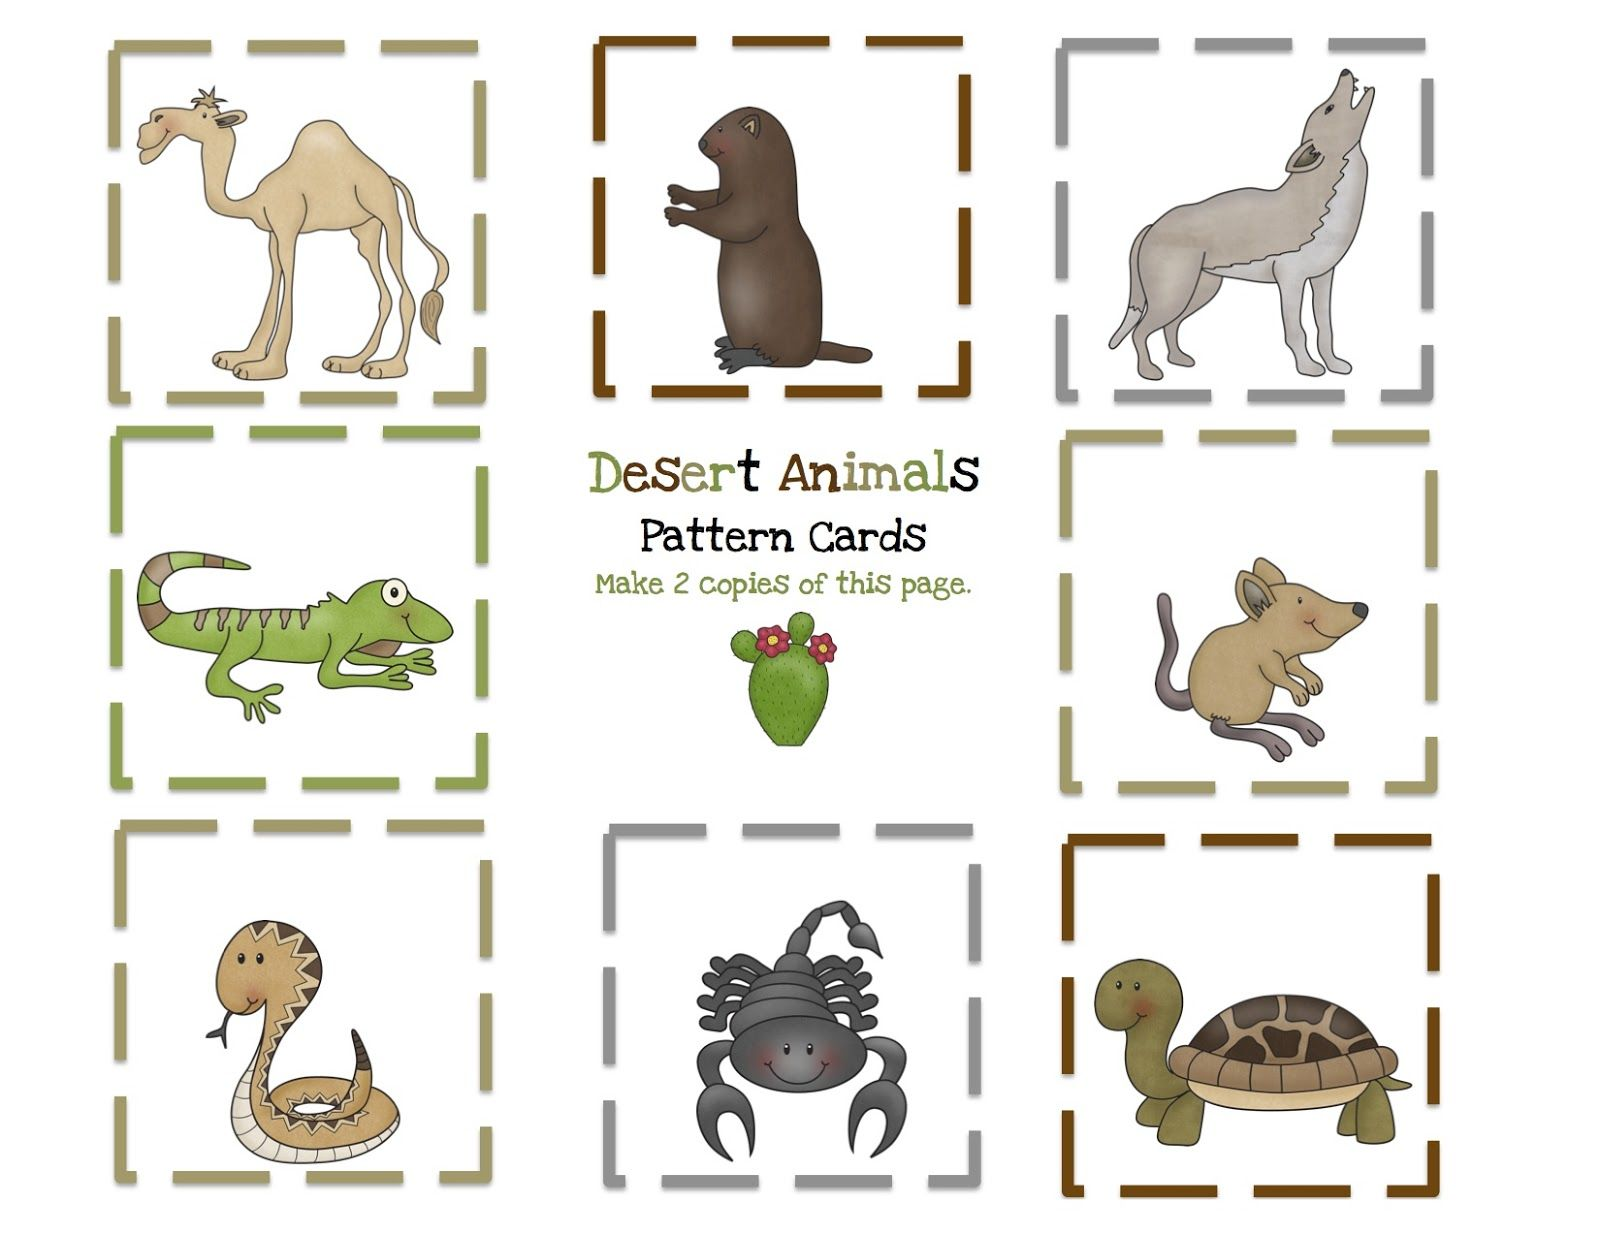 Desert 9 Pattern Cards Jpg 1600 1236 Desert Animals Desert Animals Printable Animal Printables